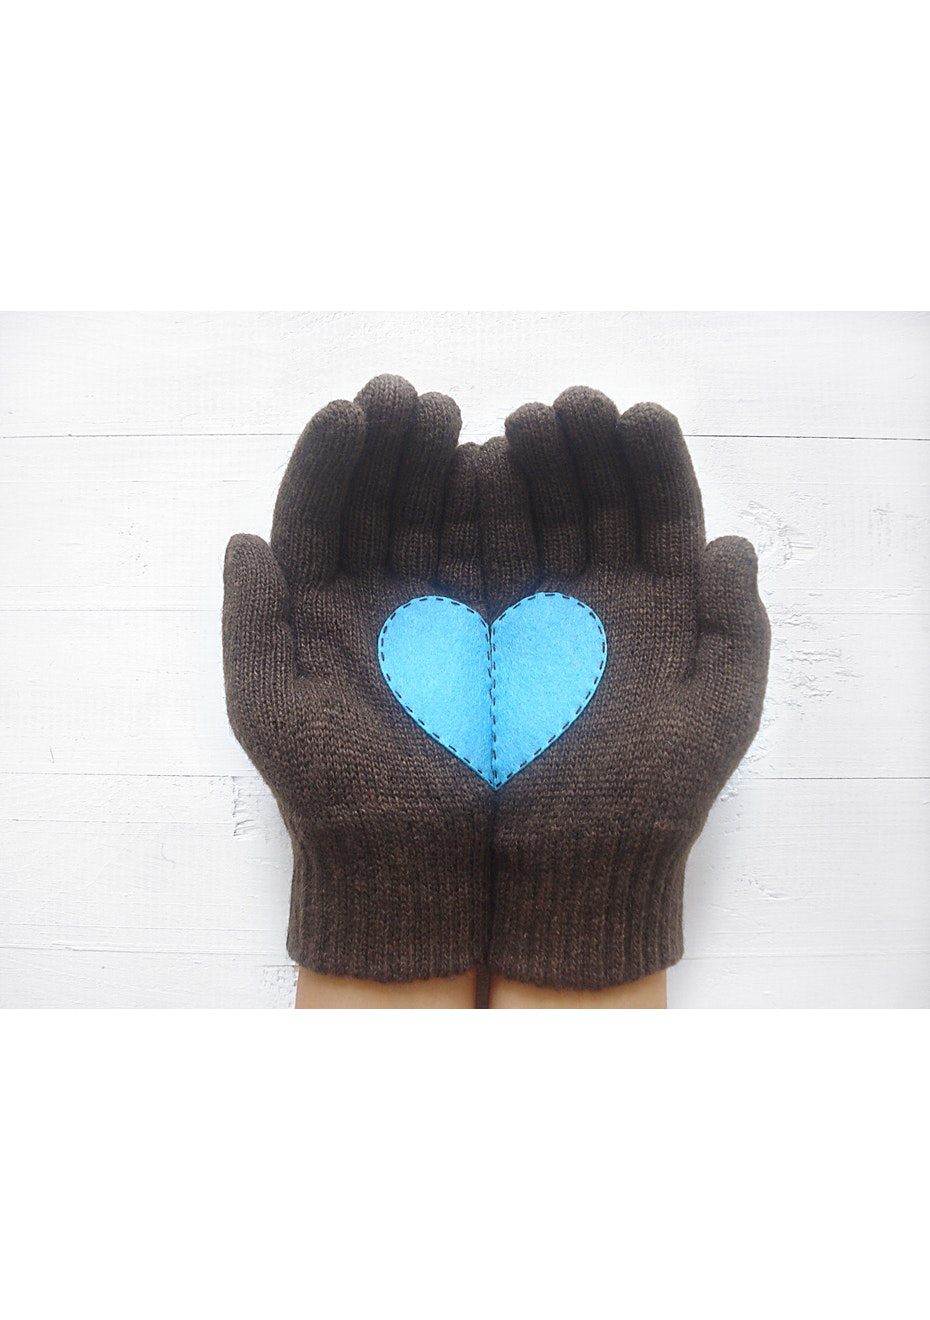 Heart Gloves - Chocolate Brown